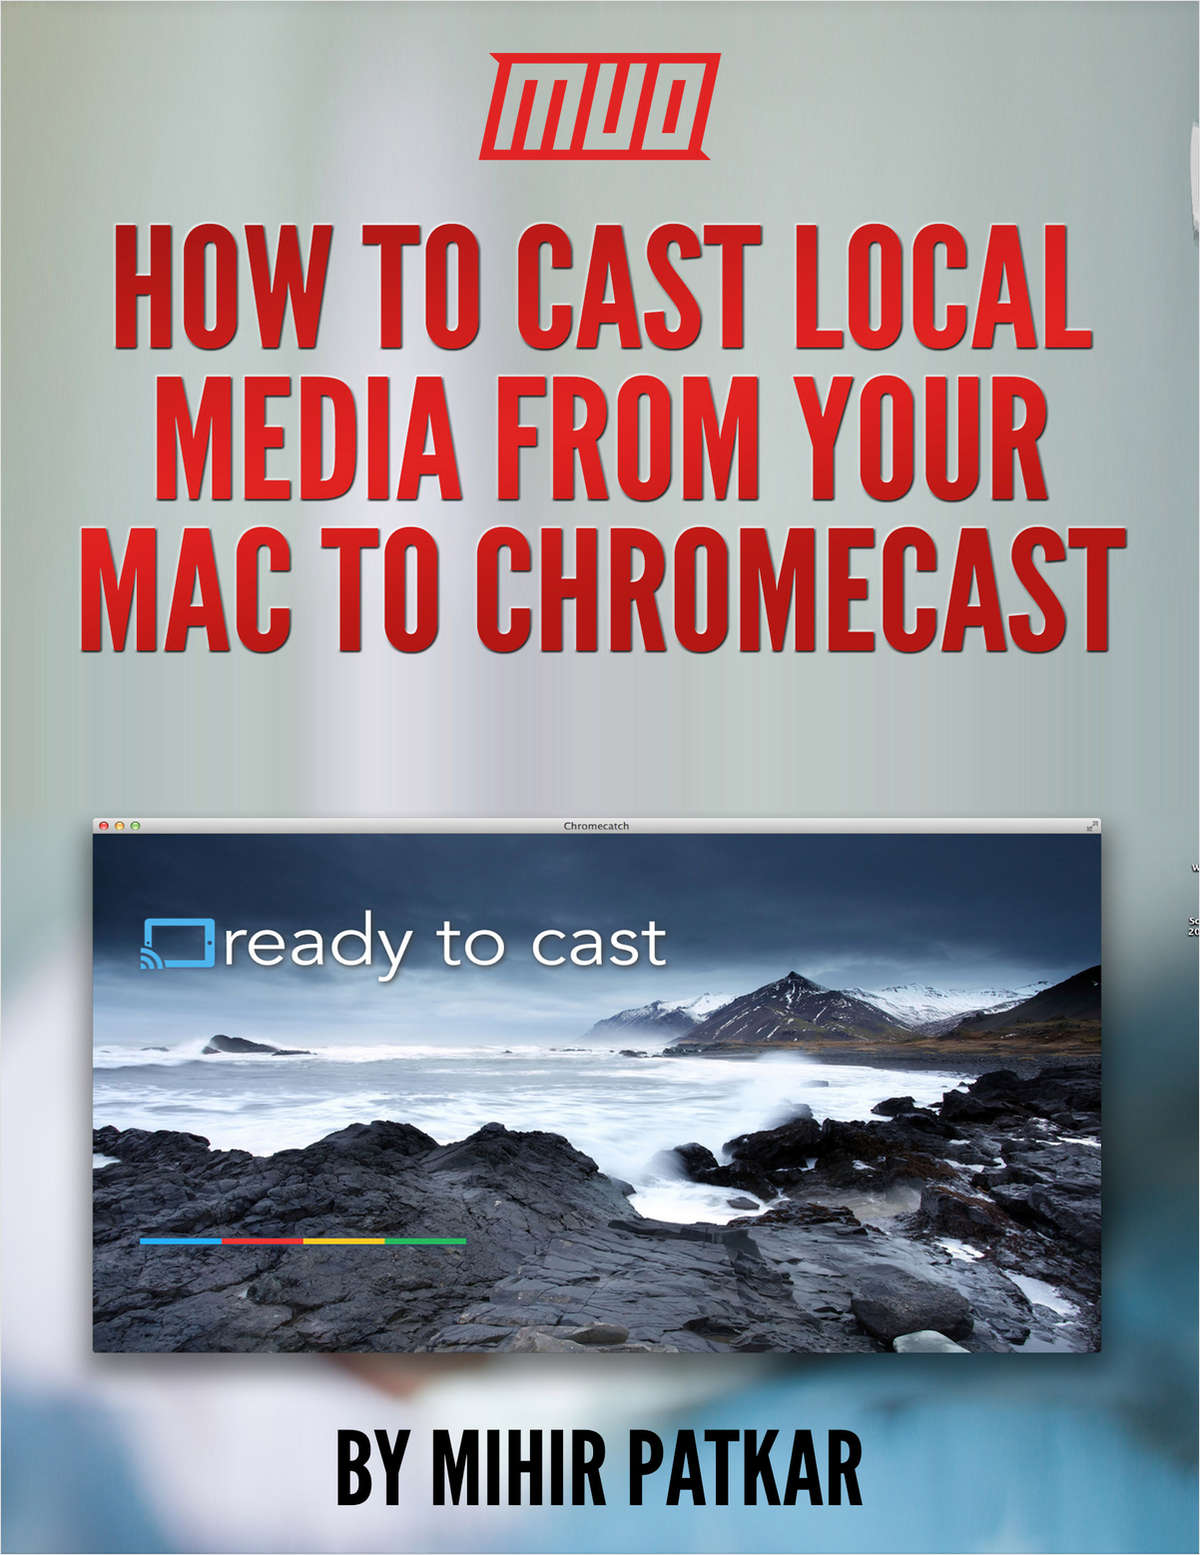 How to Cast Local Media From Your Mac To Chromecast